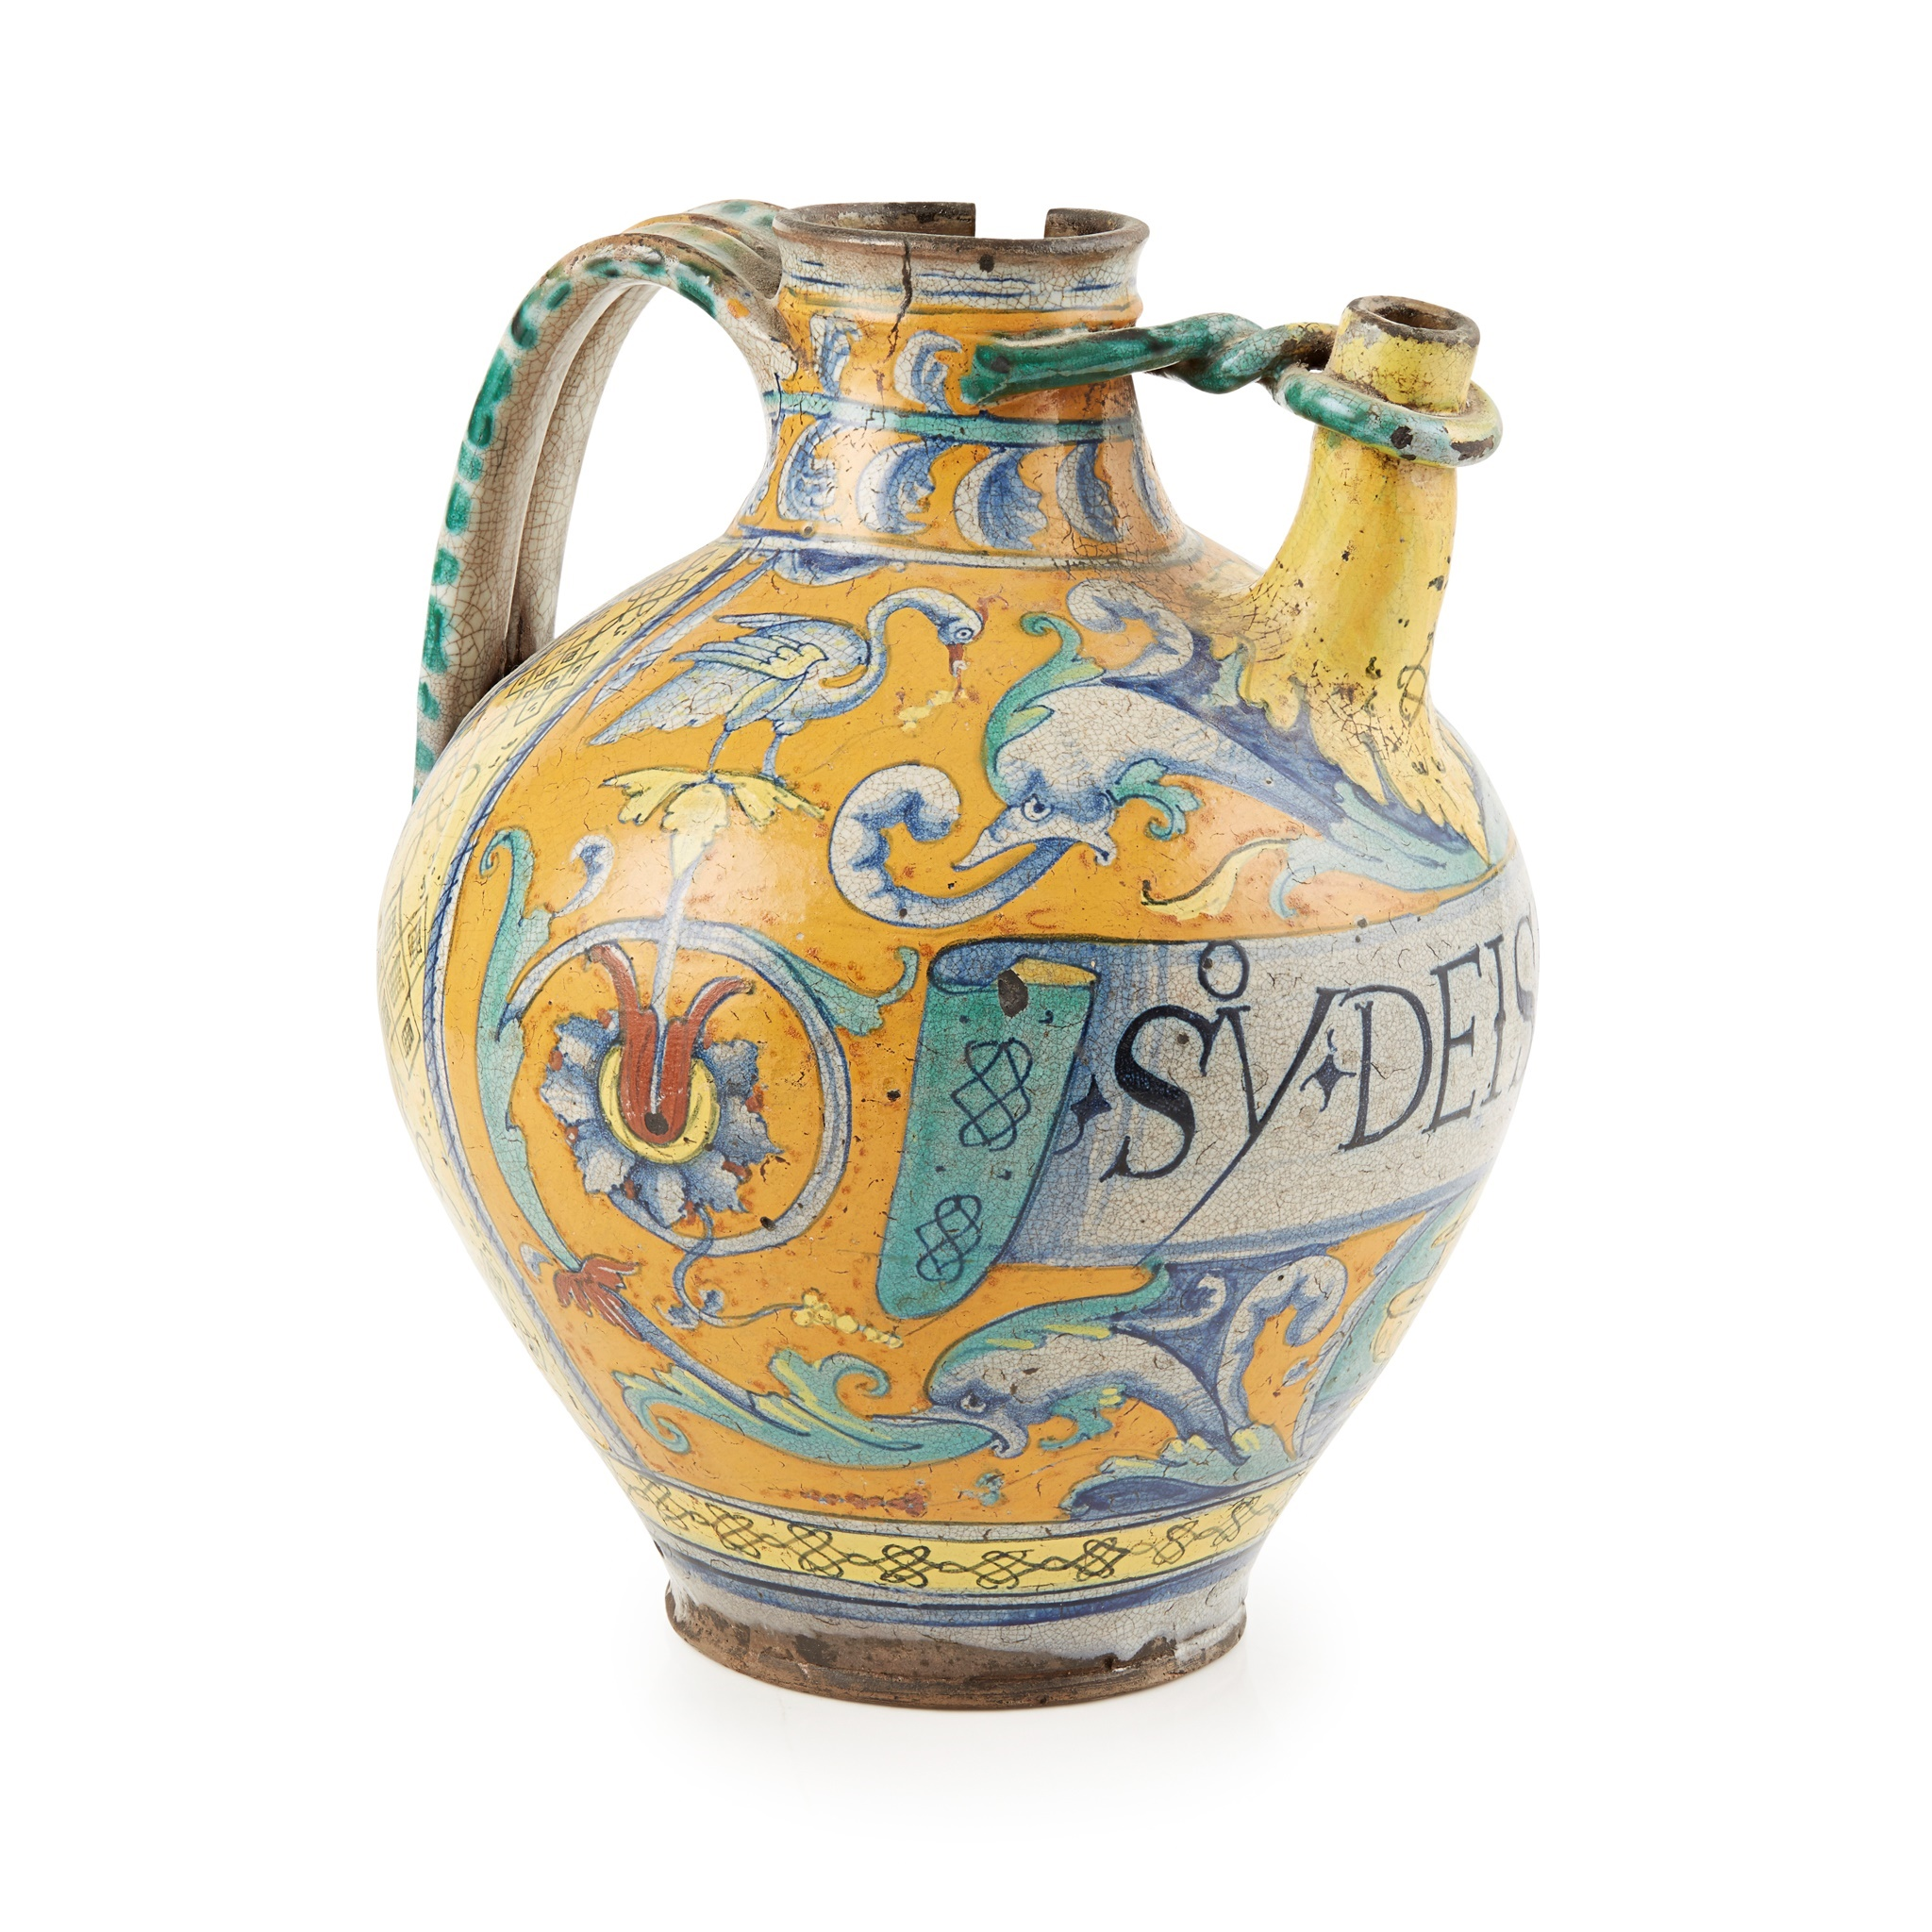 UNRECORDED ITALIAN MAIOLICA HANDLED SPOUTED DRUG JAR